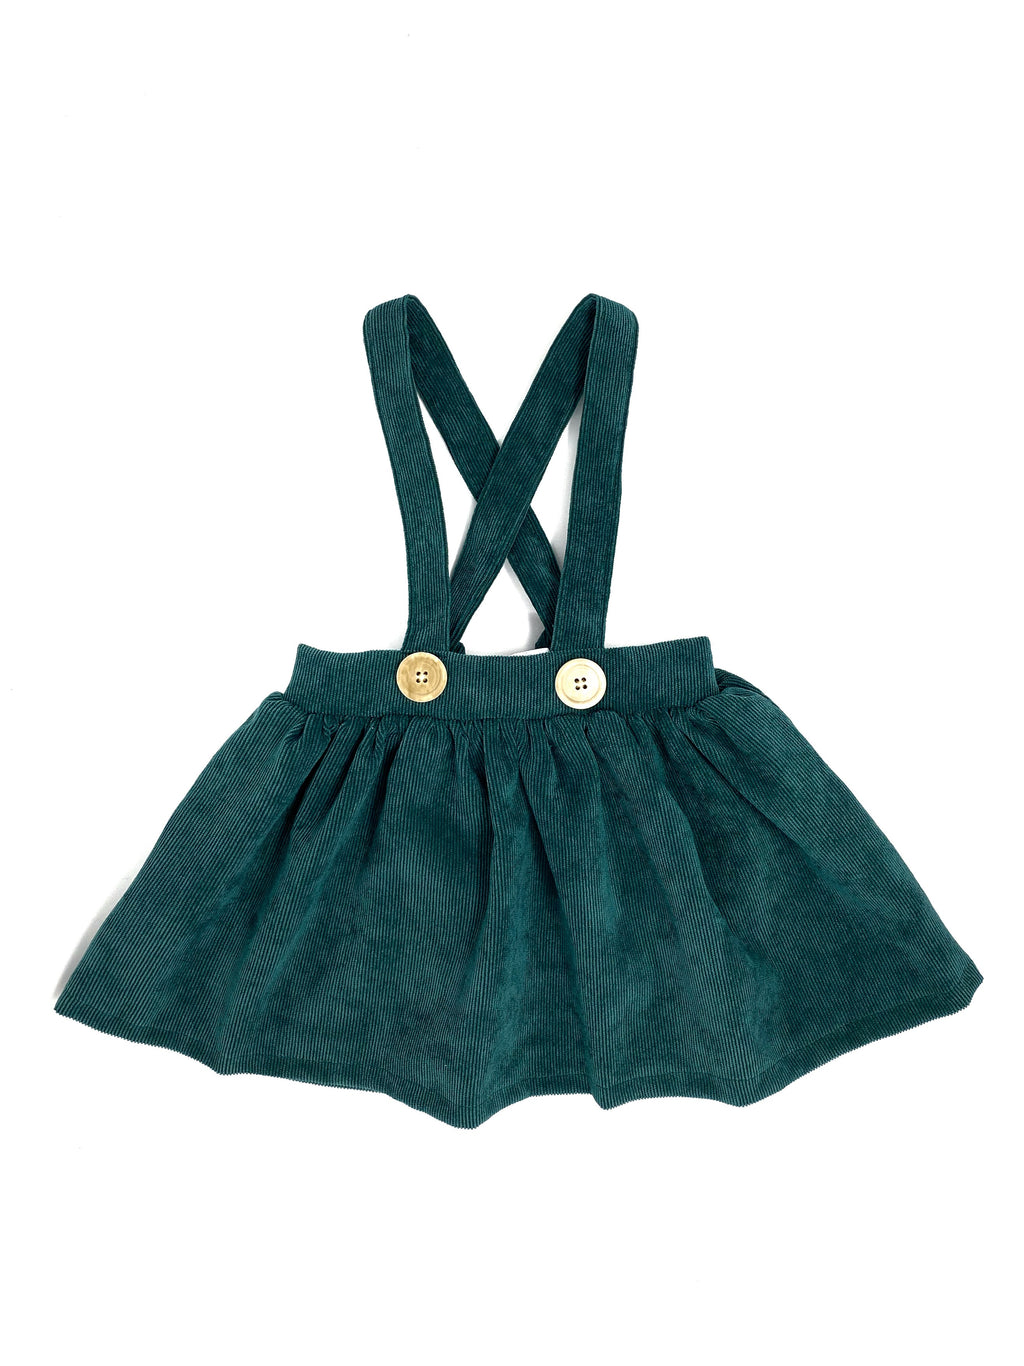 DARK GREEN CORDUROY | SUSPENDER SKIRT